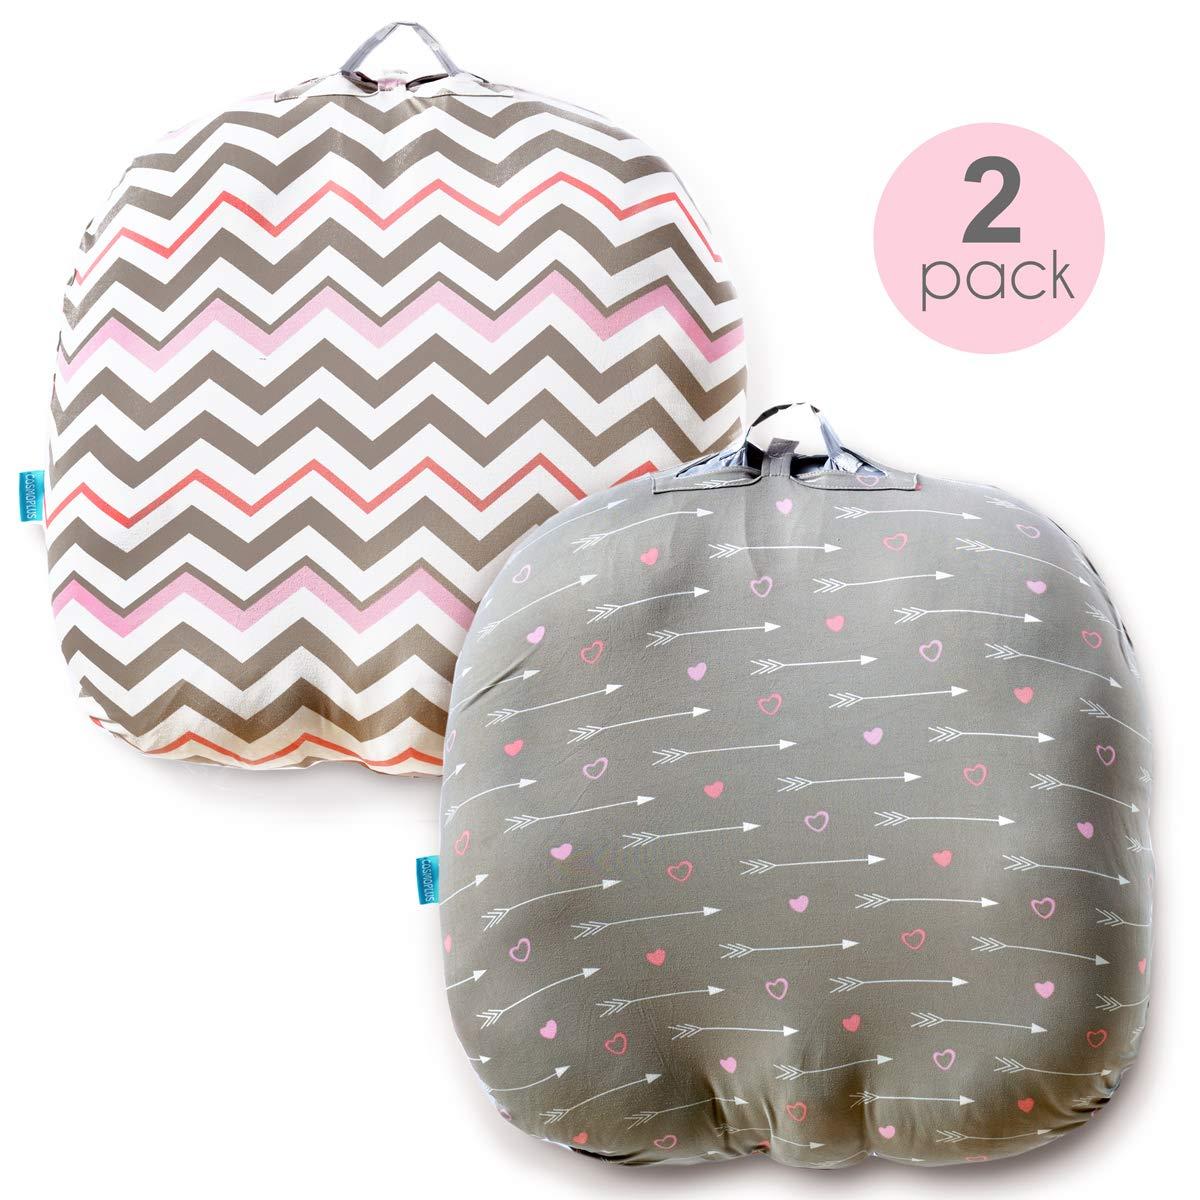 cosmoplus Stretchy Newborn Lounger Cover -2 Pack Removable Slipcover, Super Soft Snug Fitted, Arrow & Chevron